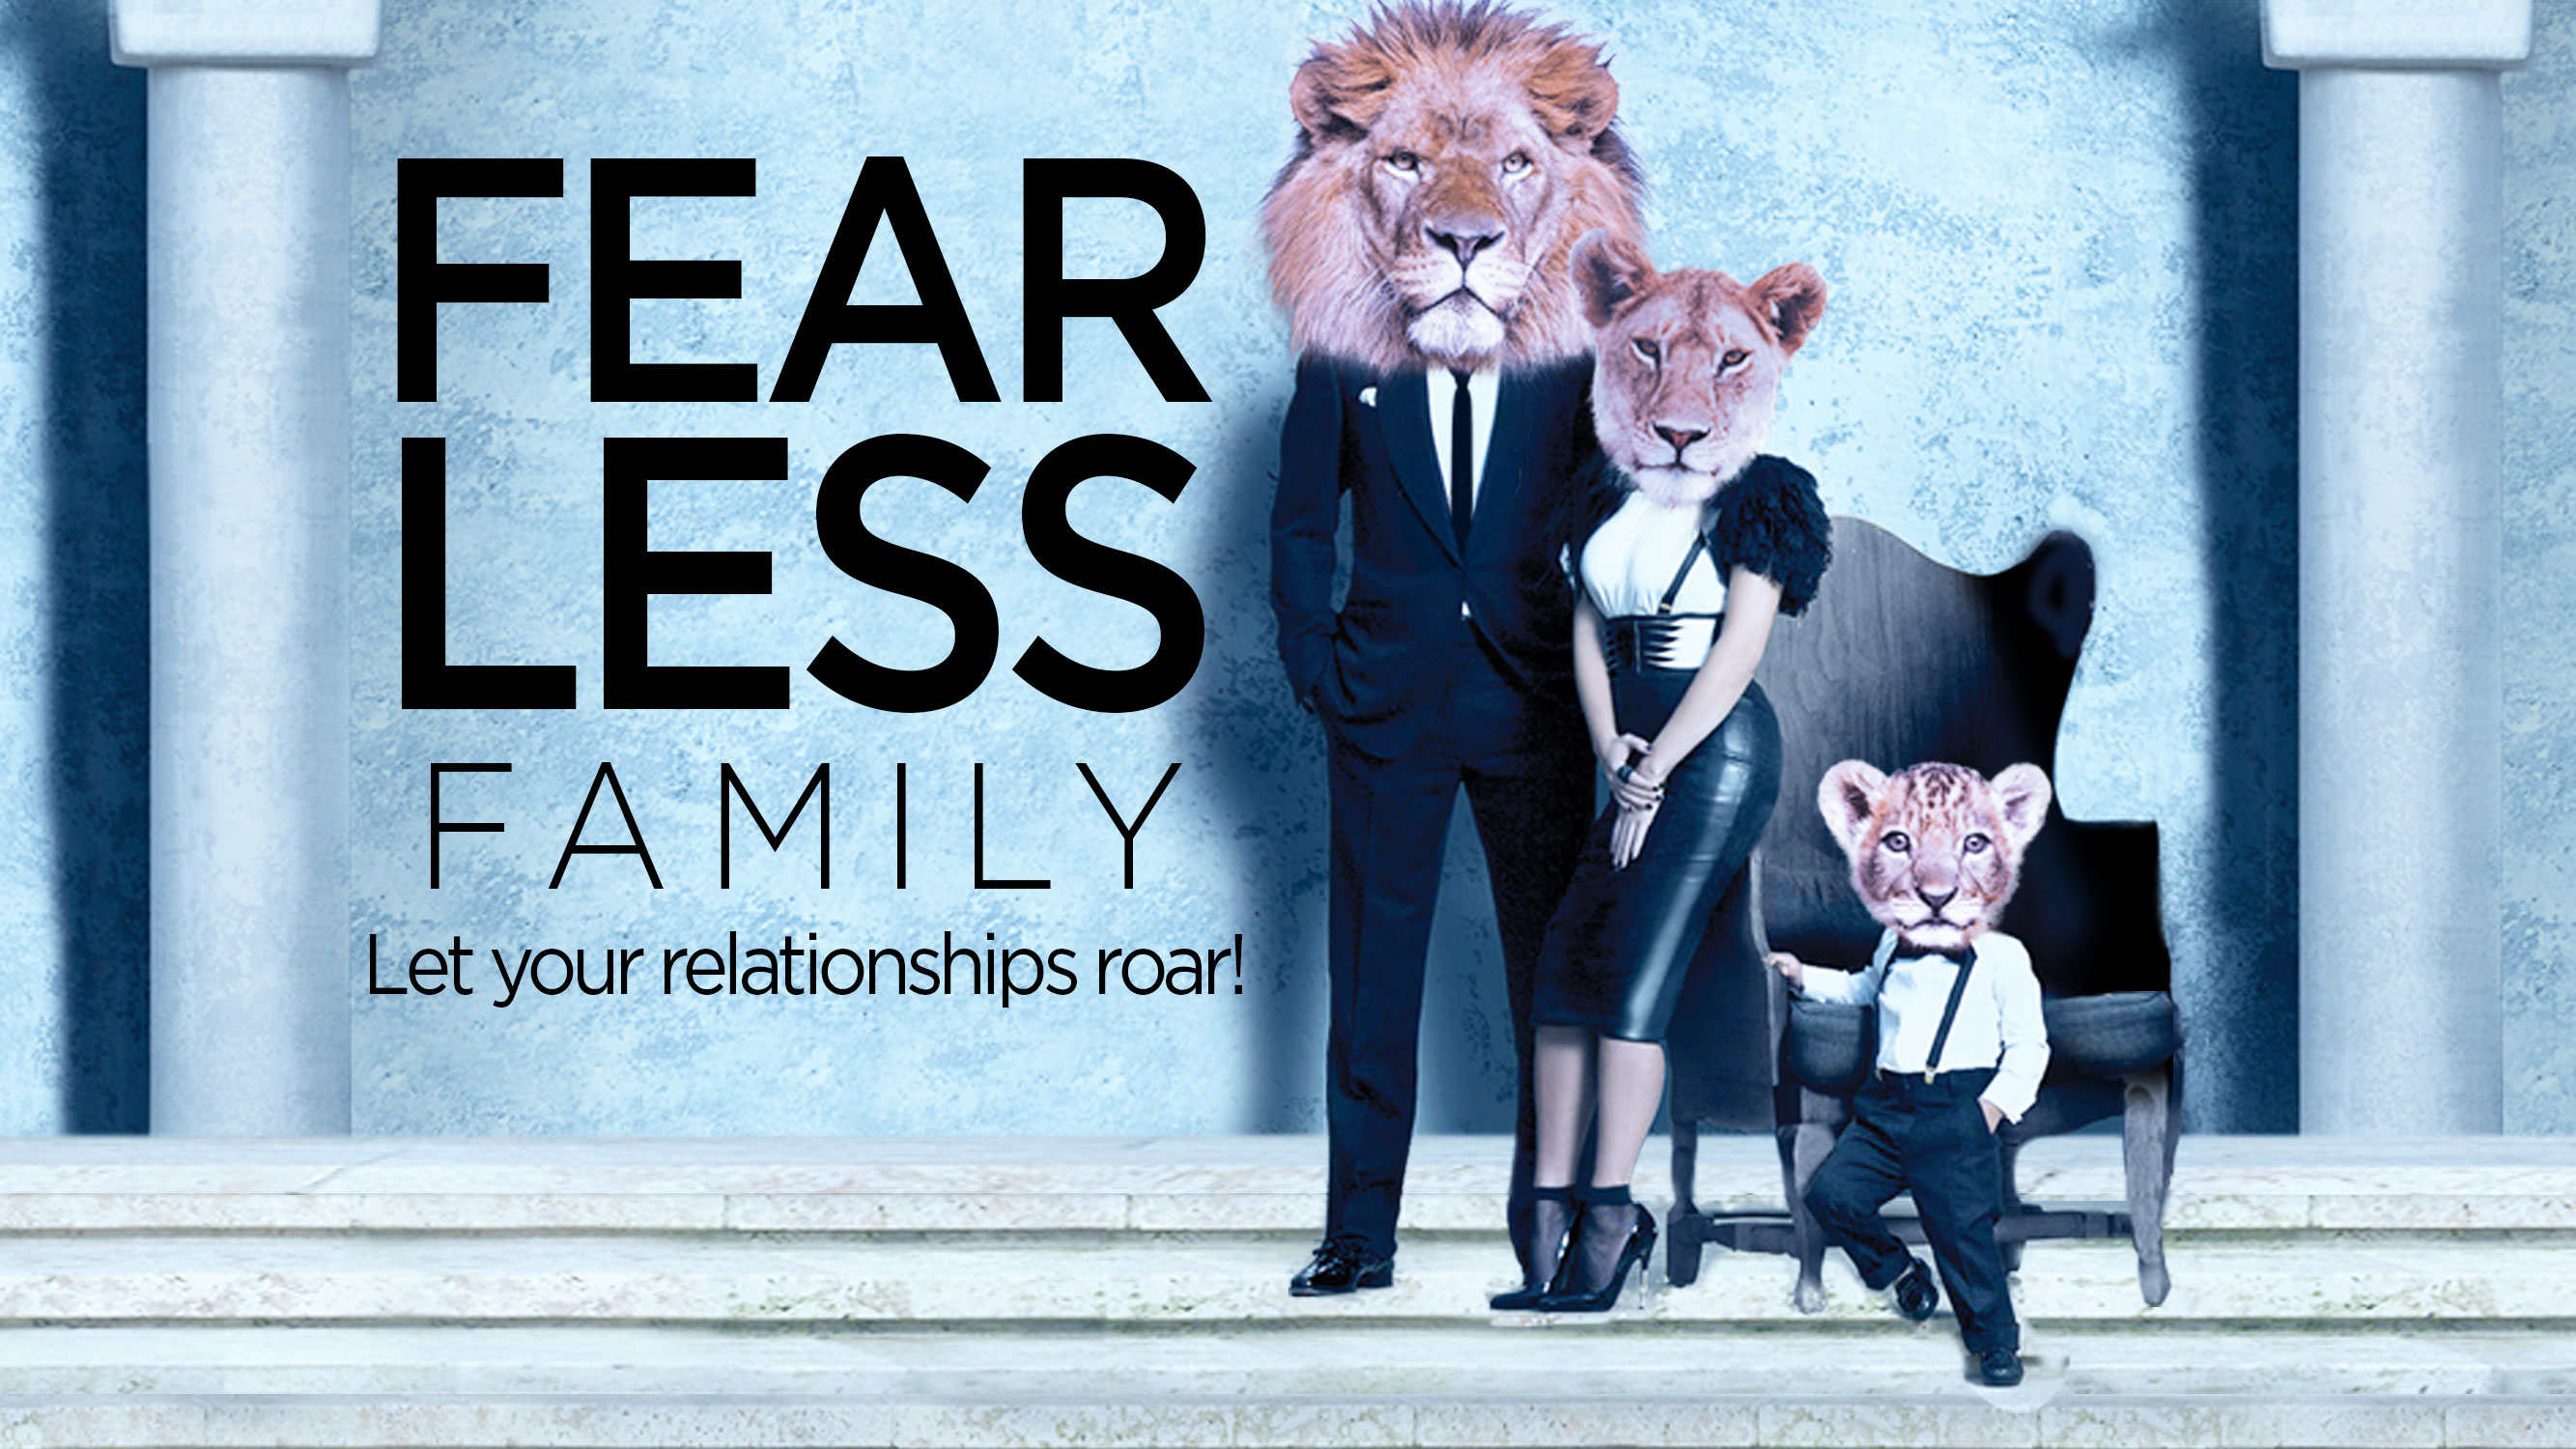 Fearless Family